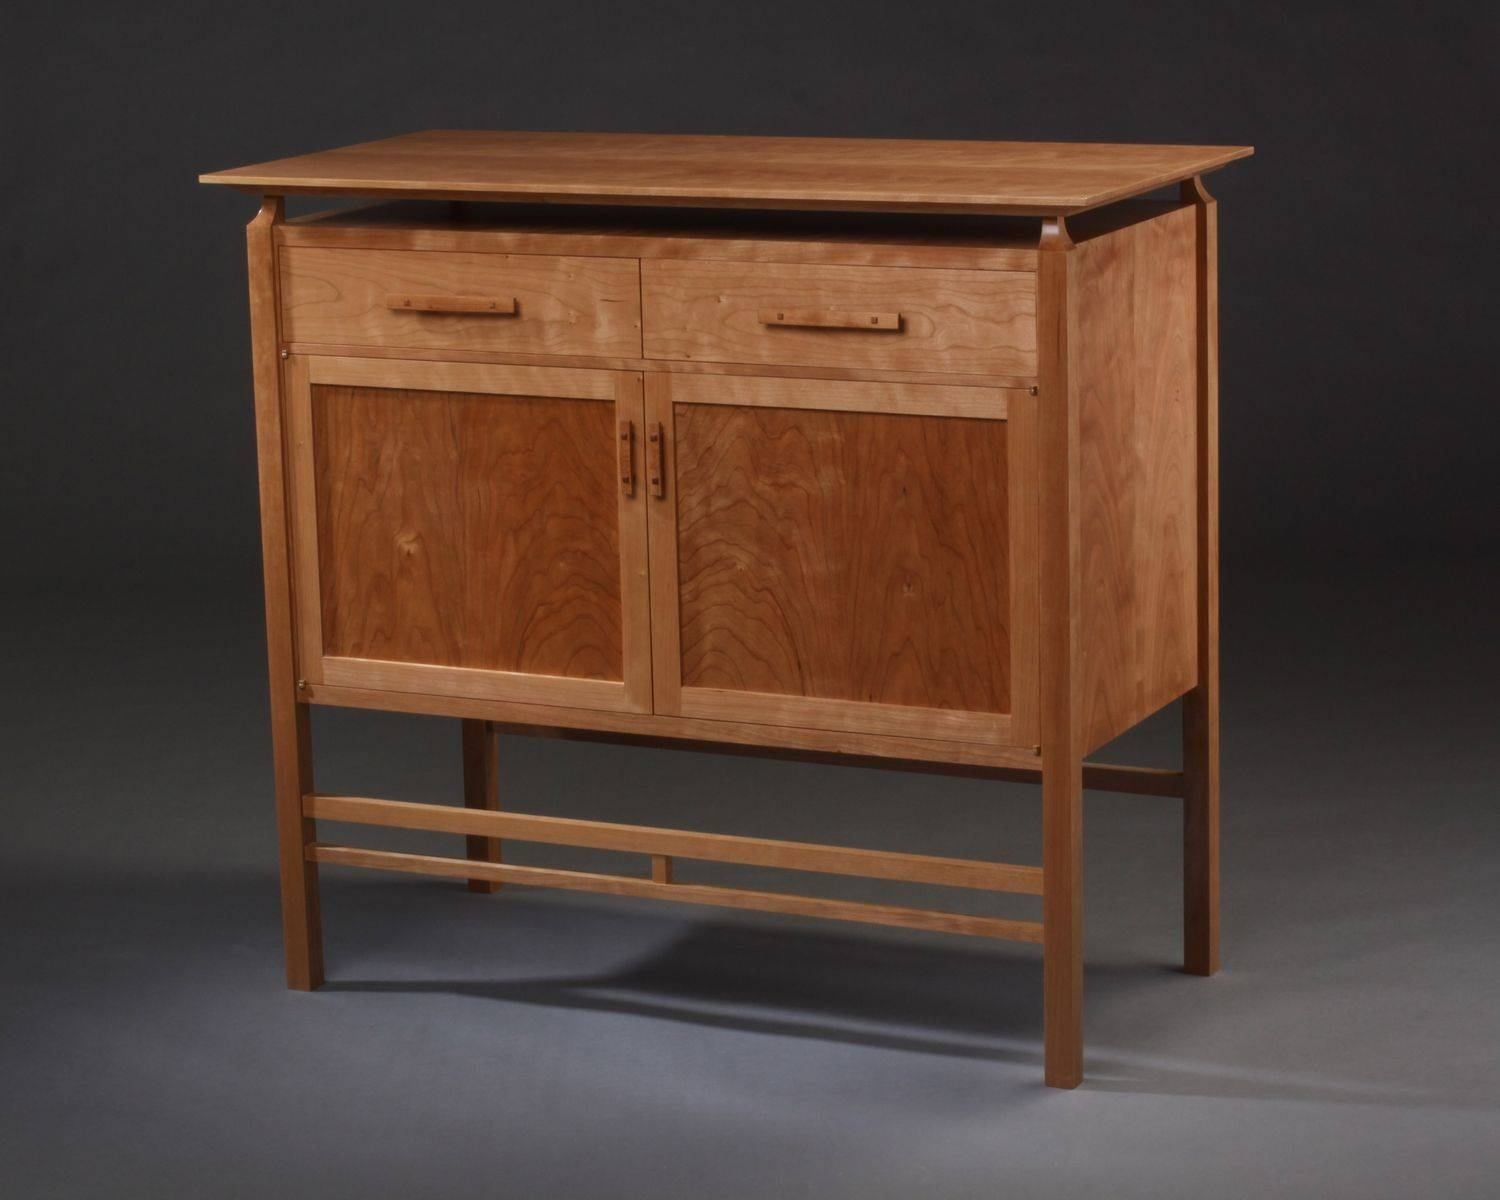 Mission Sideboards | Craftsman, Arts And Crafts, Stickley Style within Mission Sideboards (Image 9 of 15)